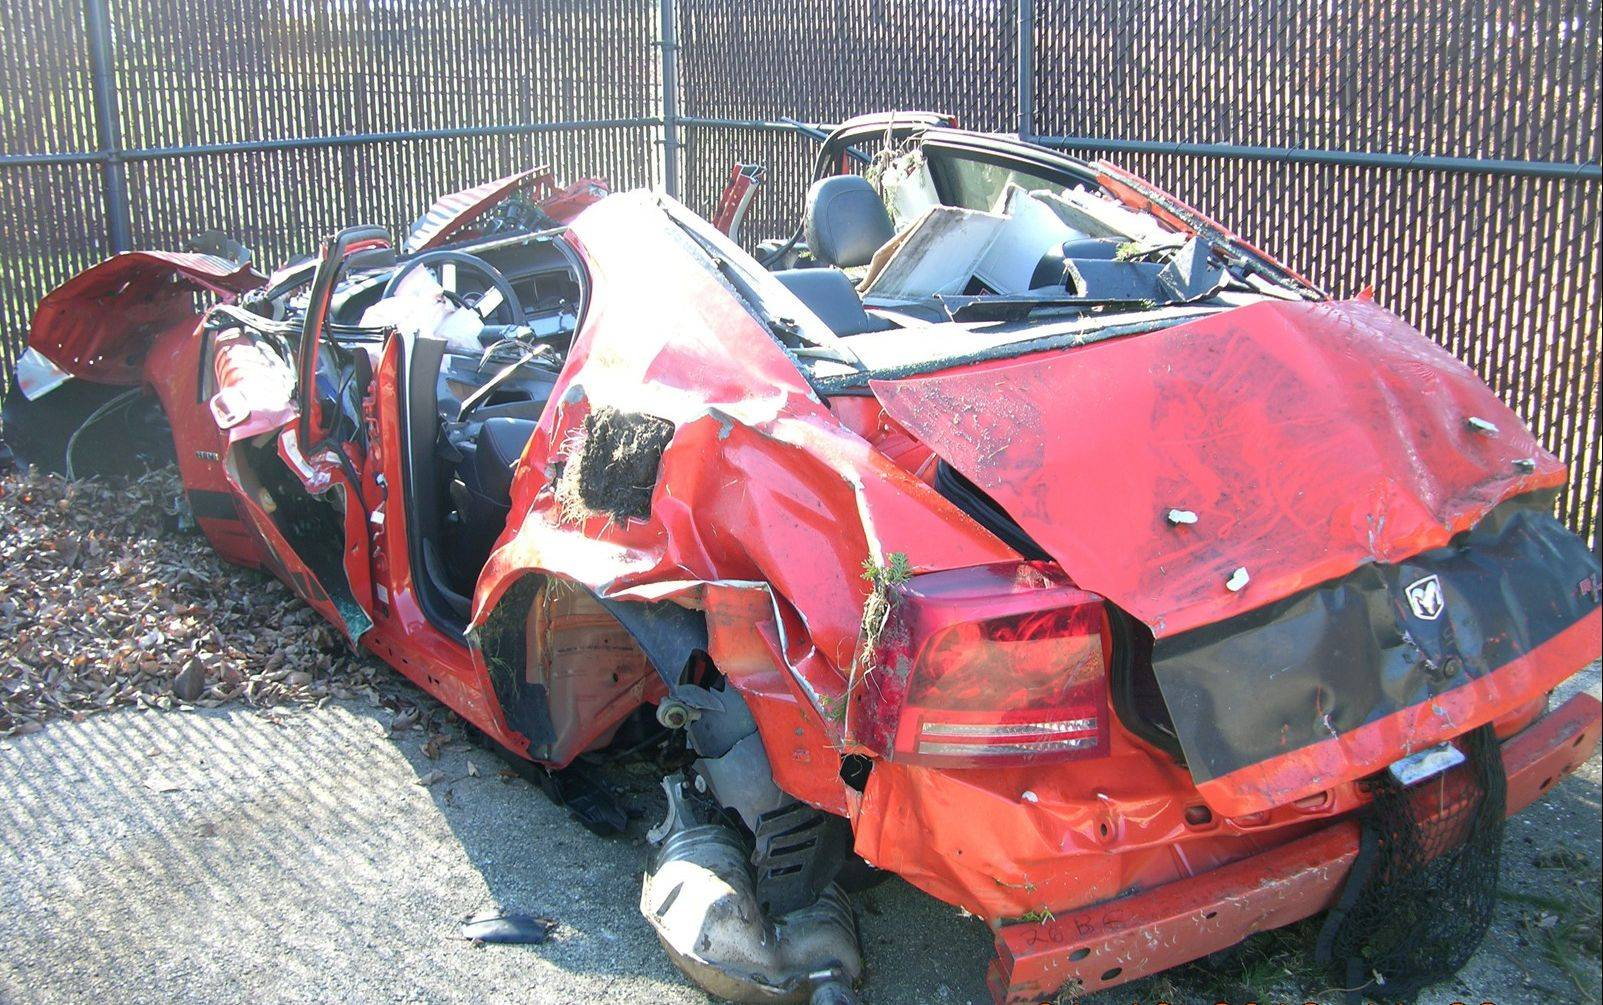 Dean Suominen's 2008 Dodge Charger was totaled in a January 2012 crash in which police say he was driving 142 mph on Ogden Avenue in Naperville. He pleaded guilty Tuesday to DUI and reckless driving.